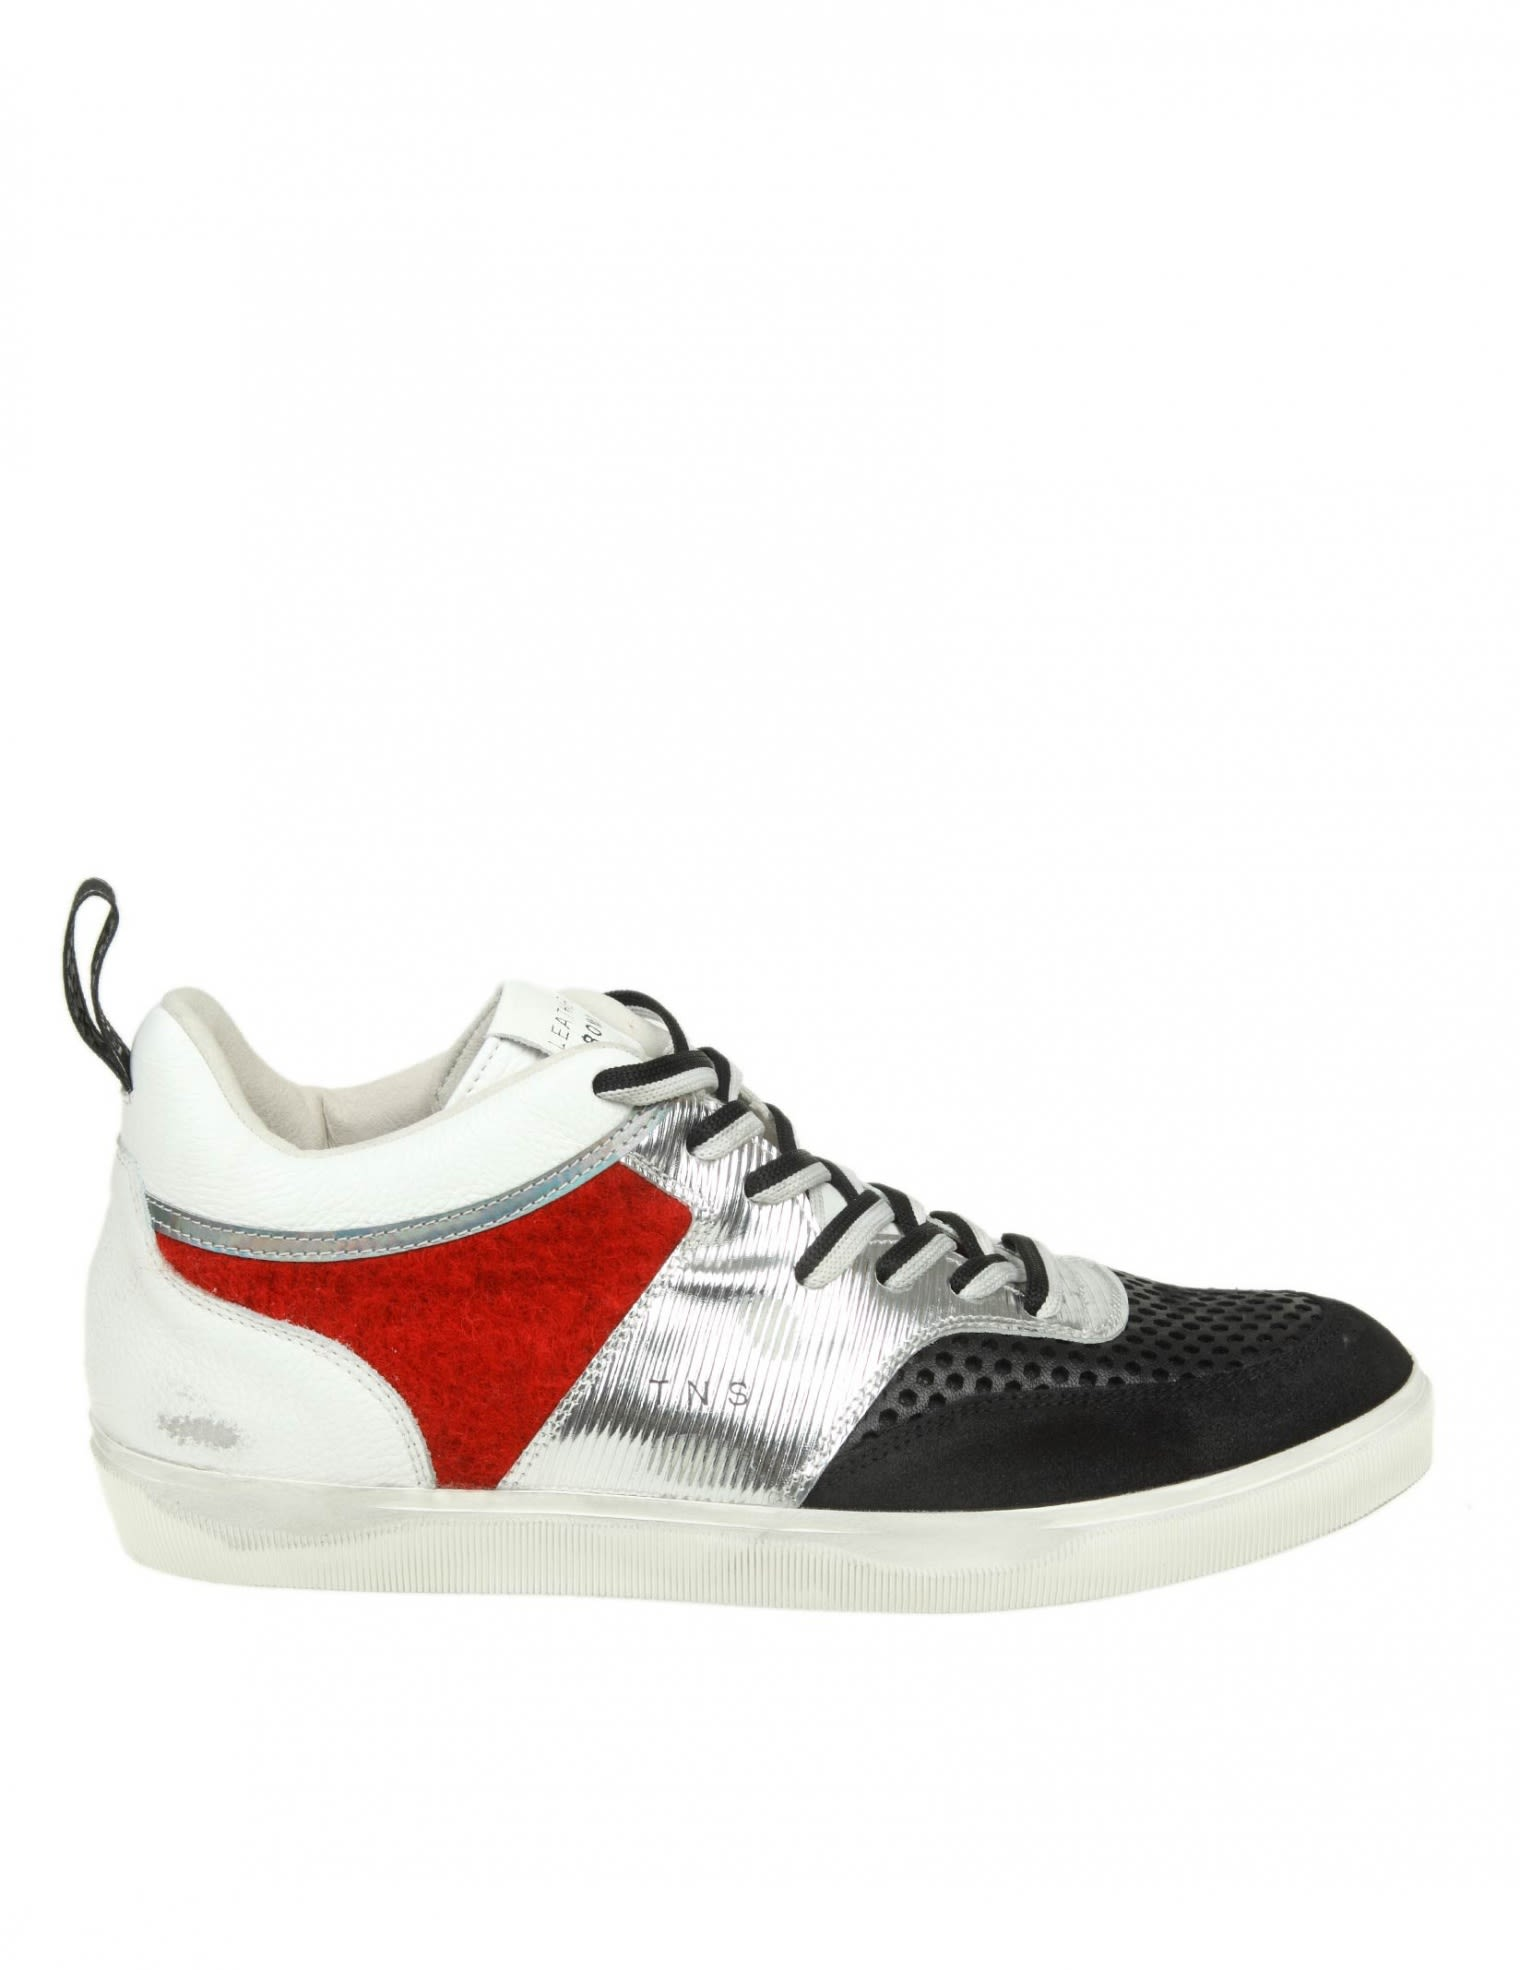 LEATHER CROWN SNEAKERS IN LEATHER WITH DETAILS IN SUEDE AND WOOL